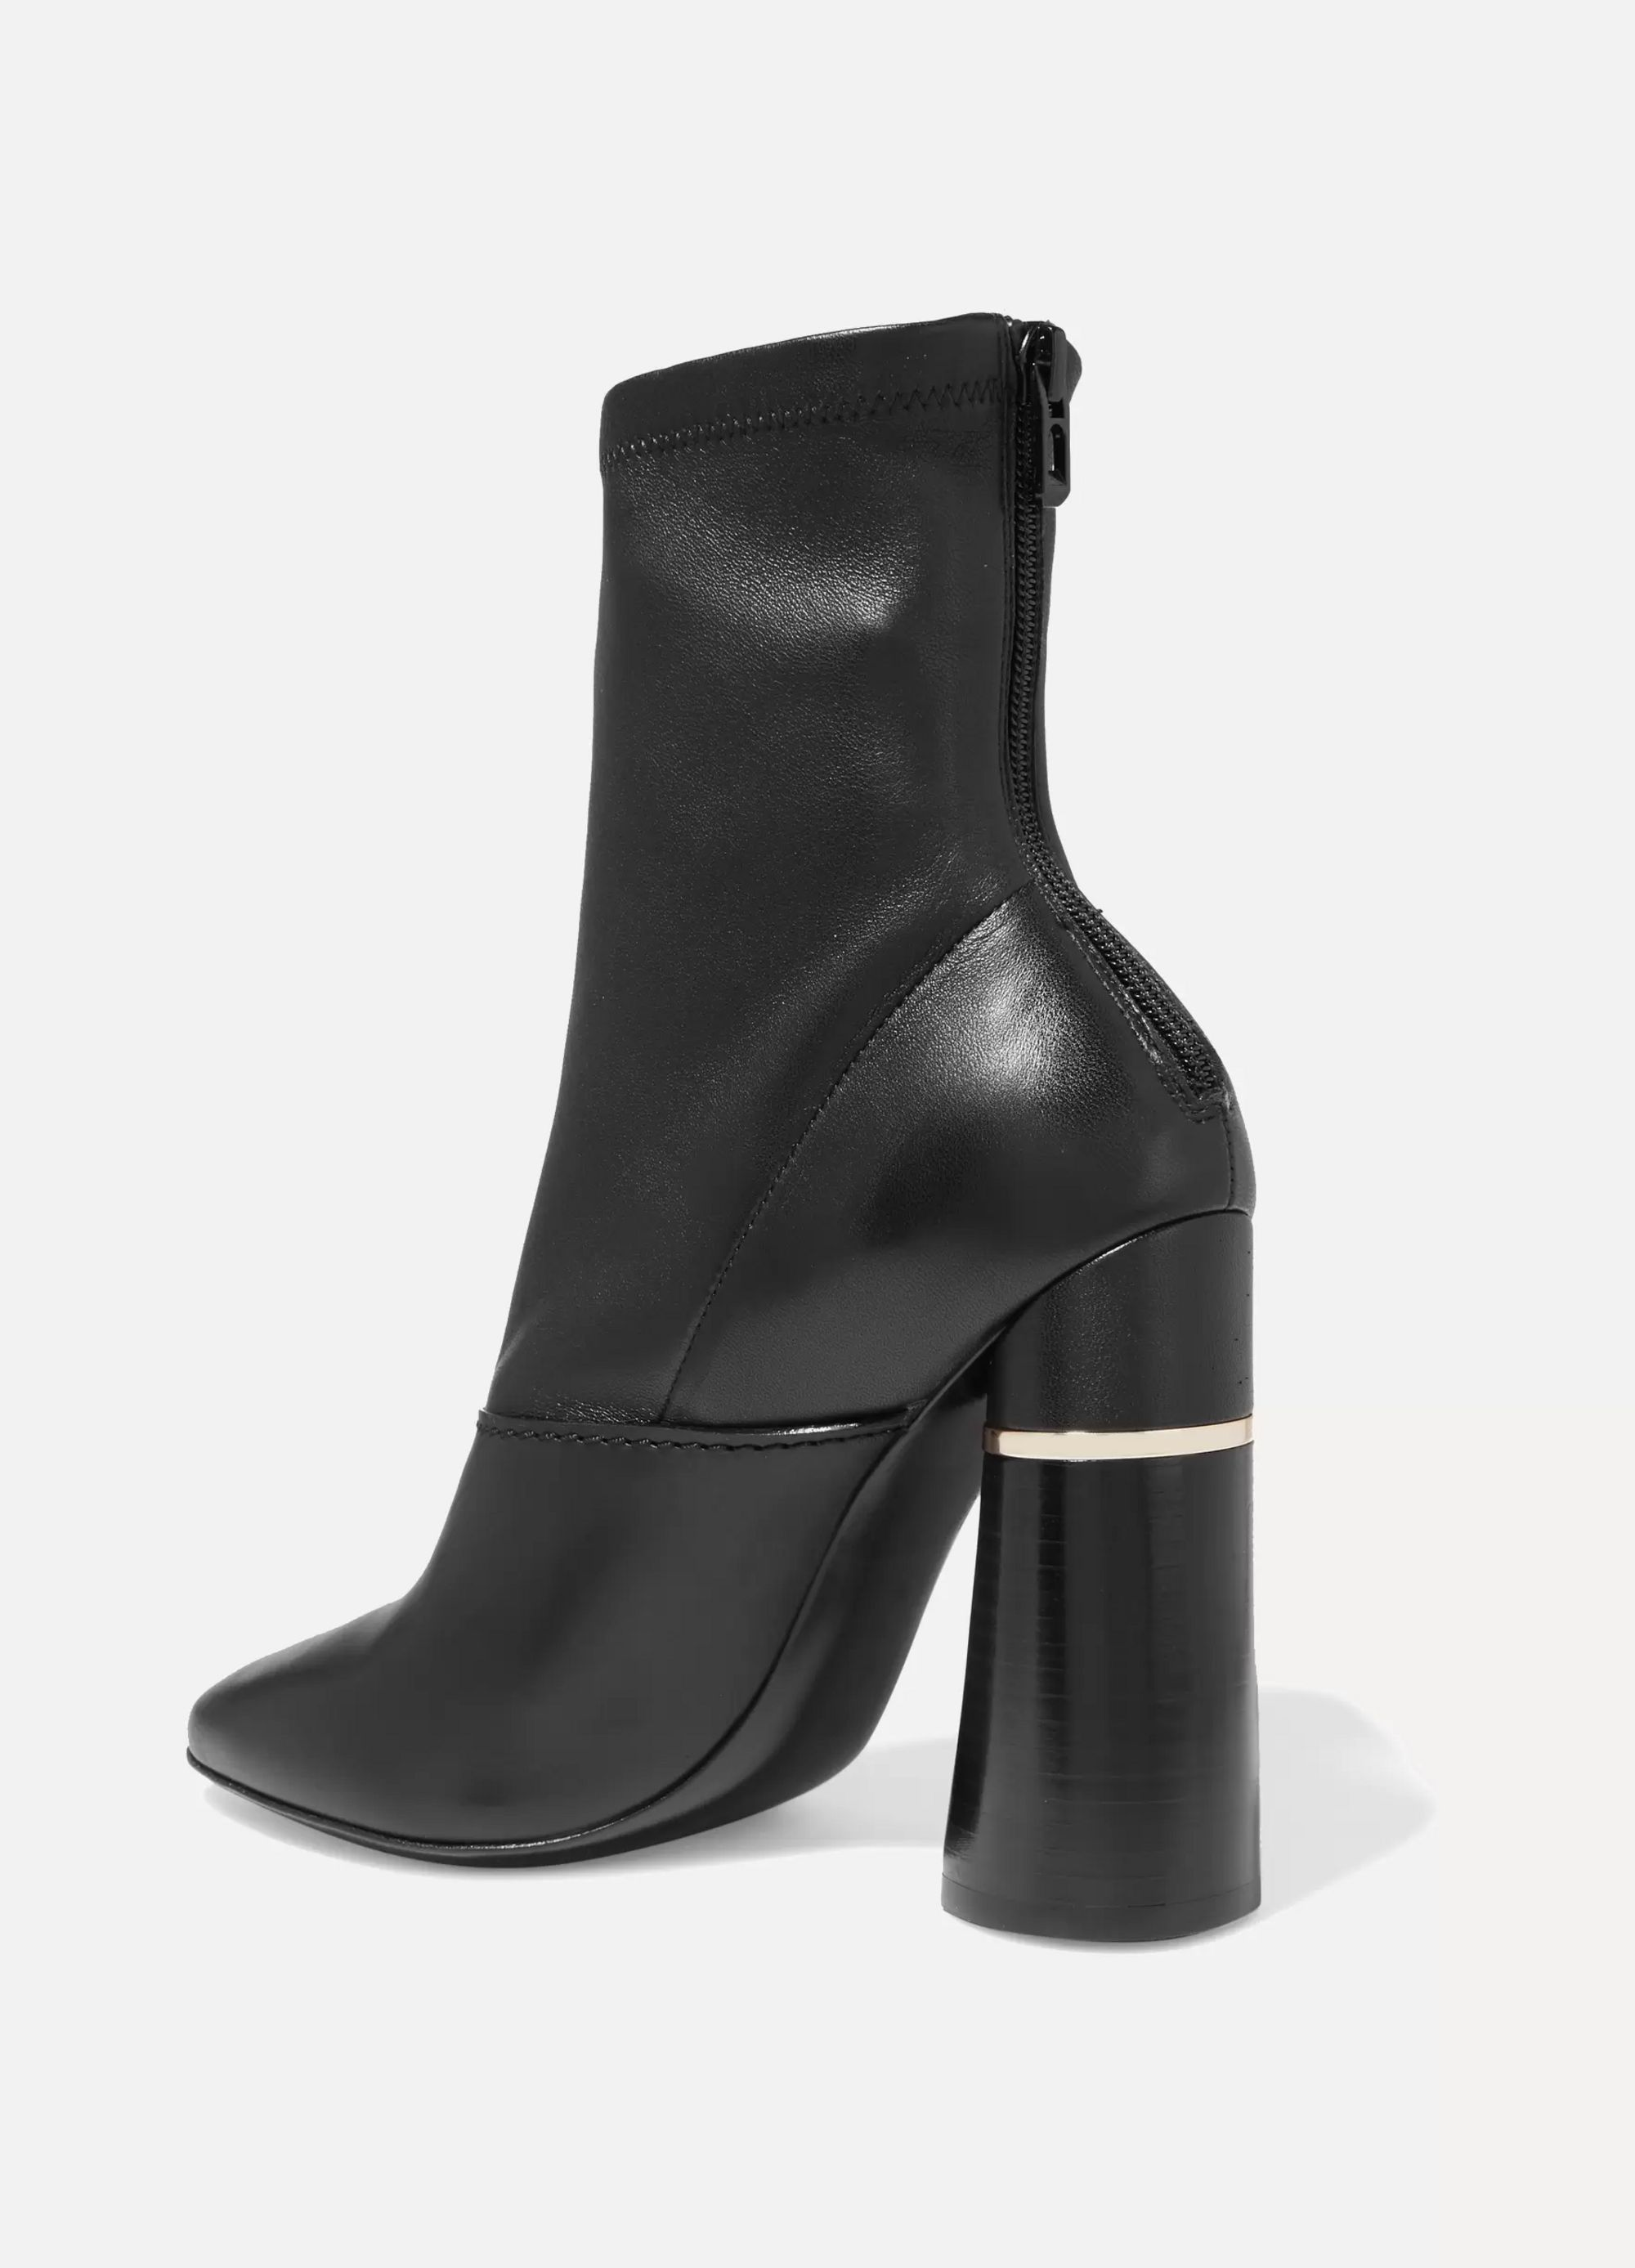 3.1 Phillip Lim Bottines en cuir Kyoto